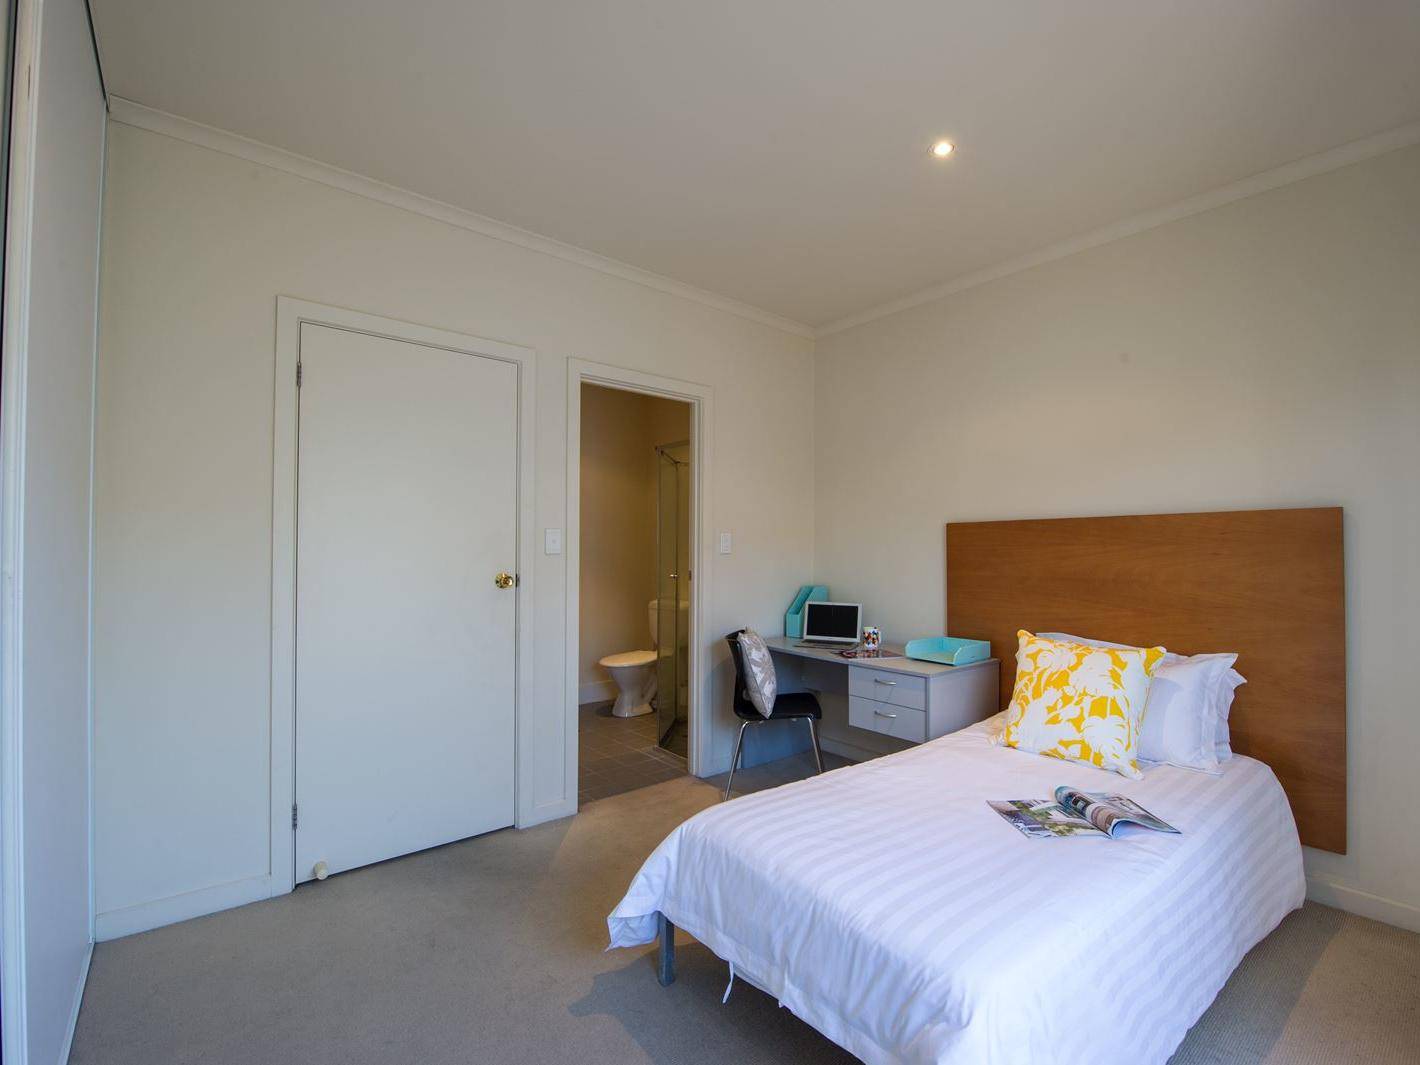 Student Living Edge Apartments – Gray Street Building - Typical bedroom with single bed, study desk & chair, built in wardrobe & with ensuite